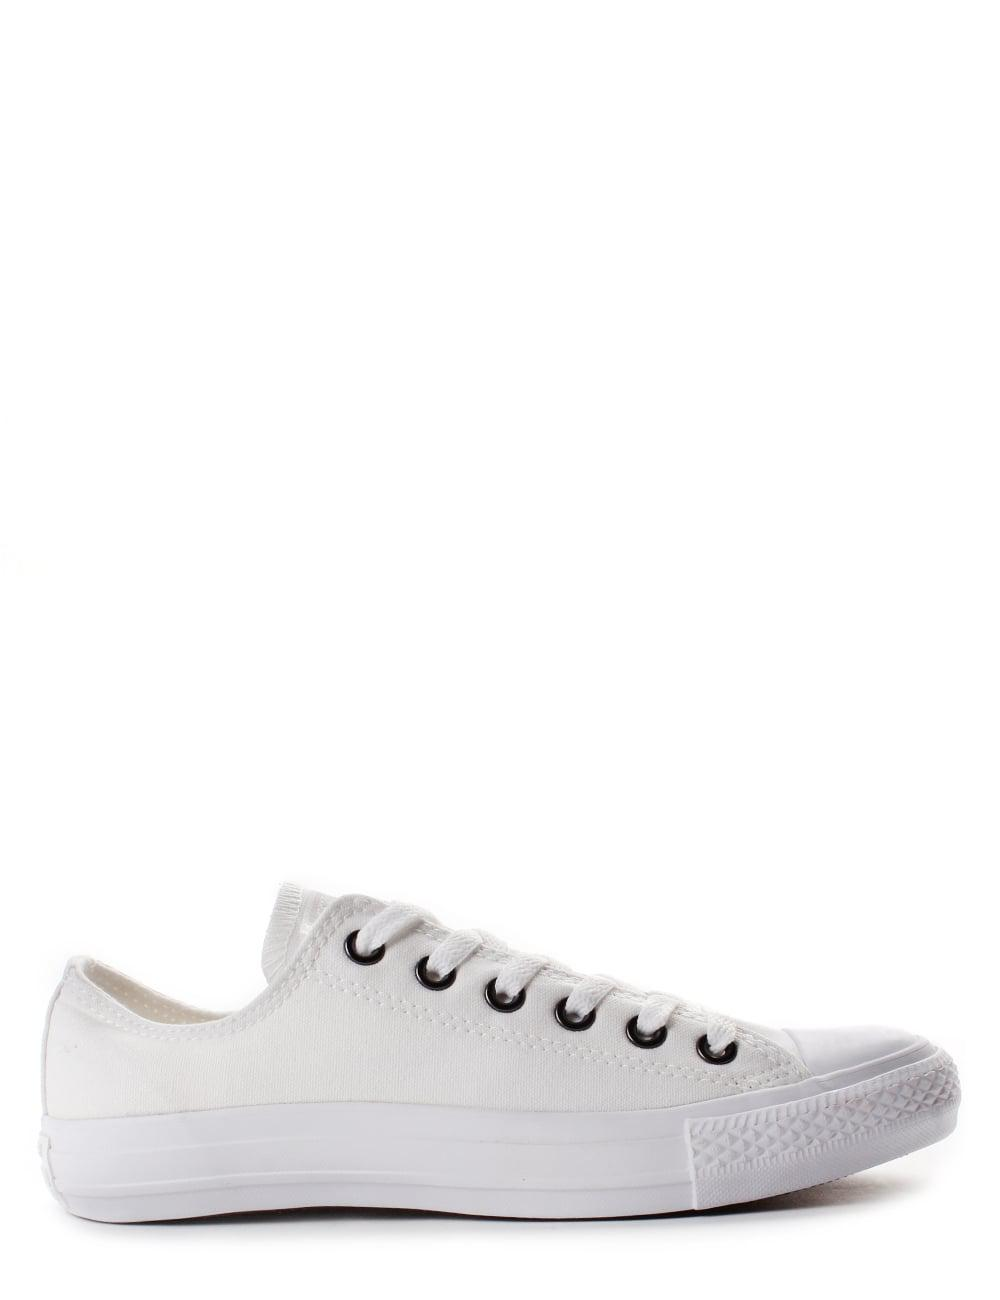 Dead in the world You will get better audit  Converse 1U647 Adult Unisex Chuck Taylor All Star Ox Low Top Shoes White  Mono